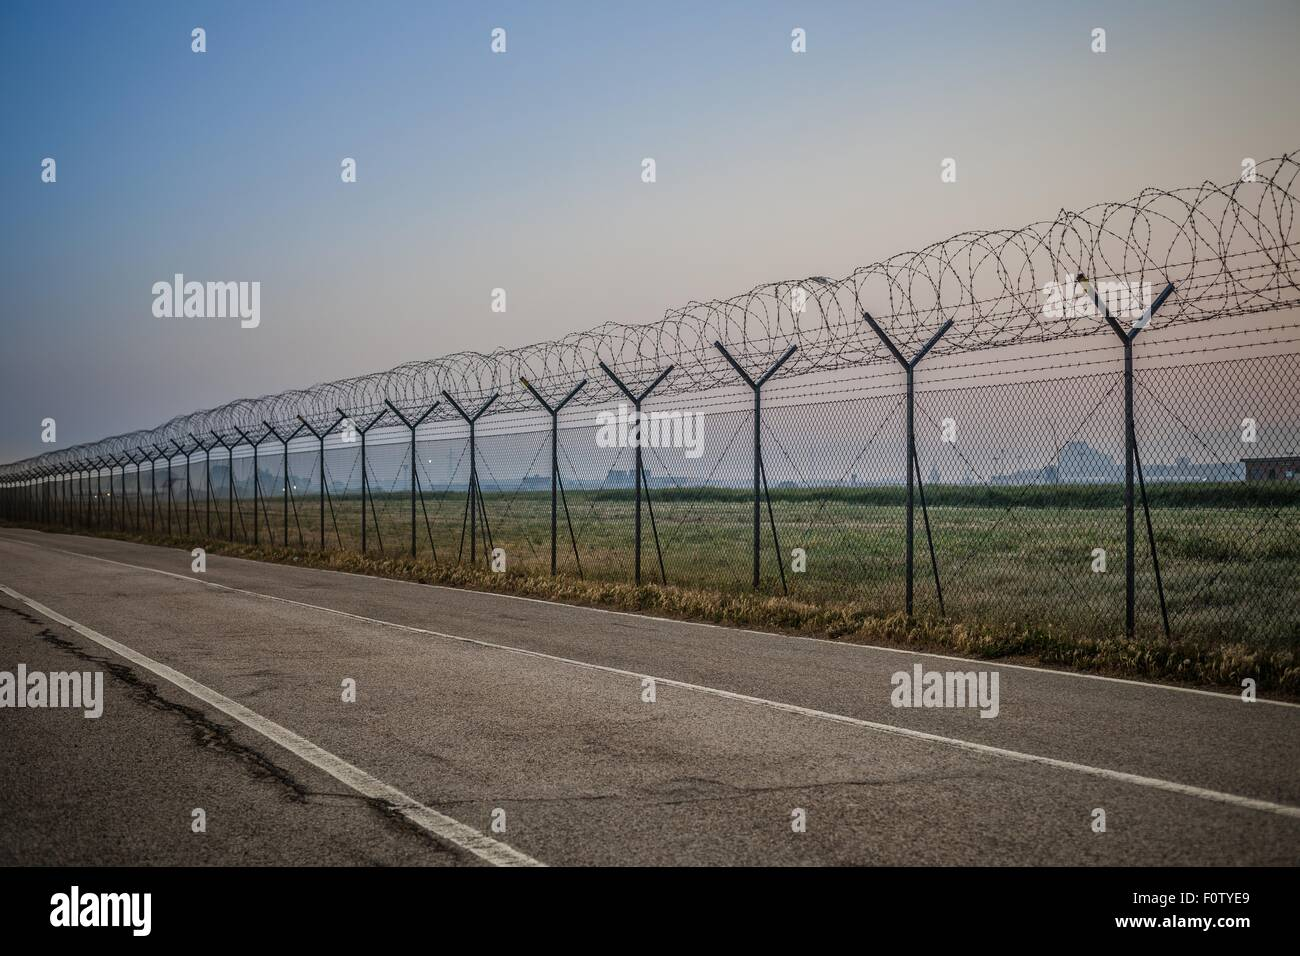 Barbed wire fence along empty road - Stock Image